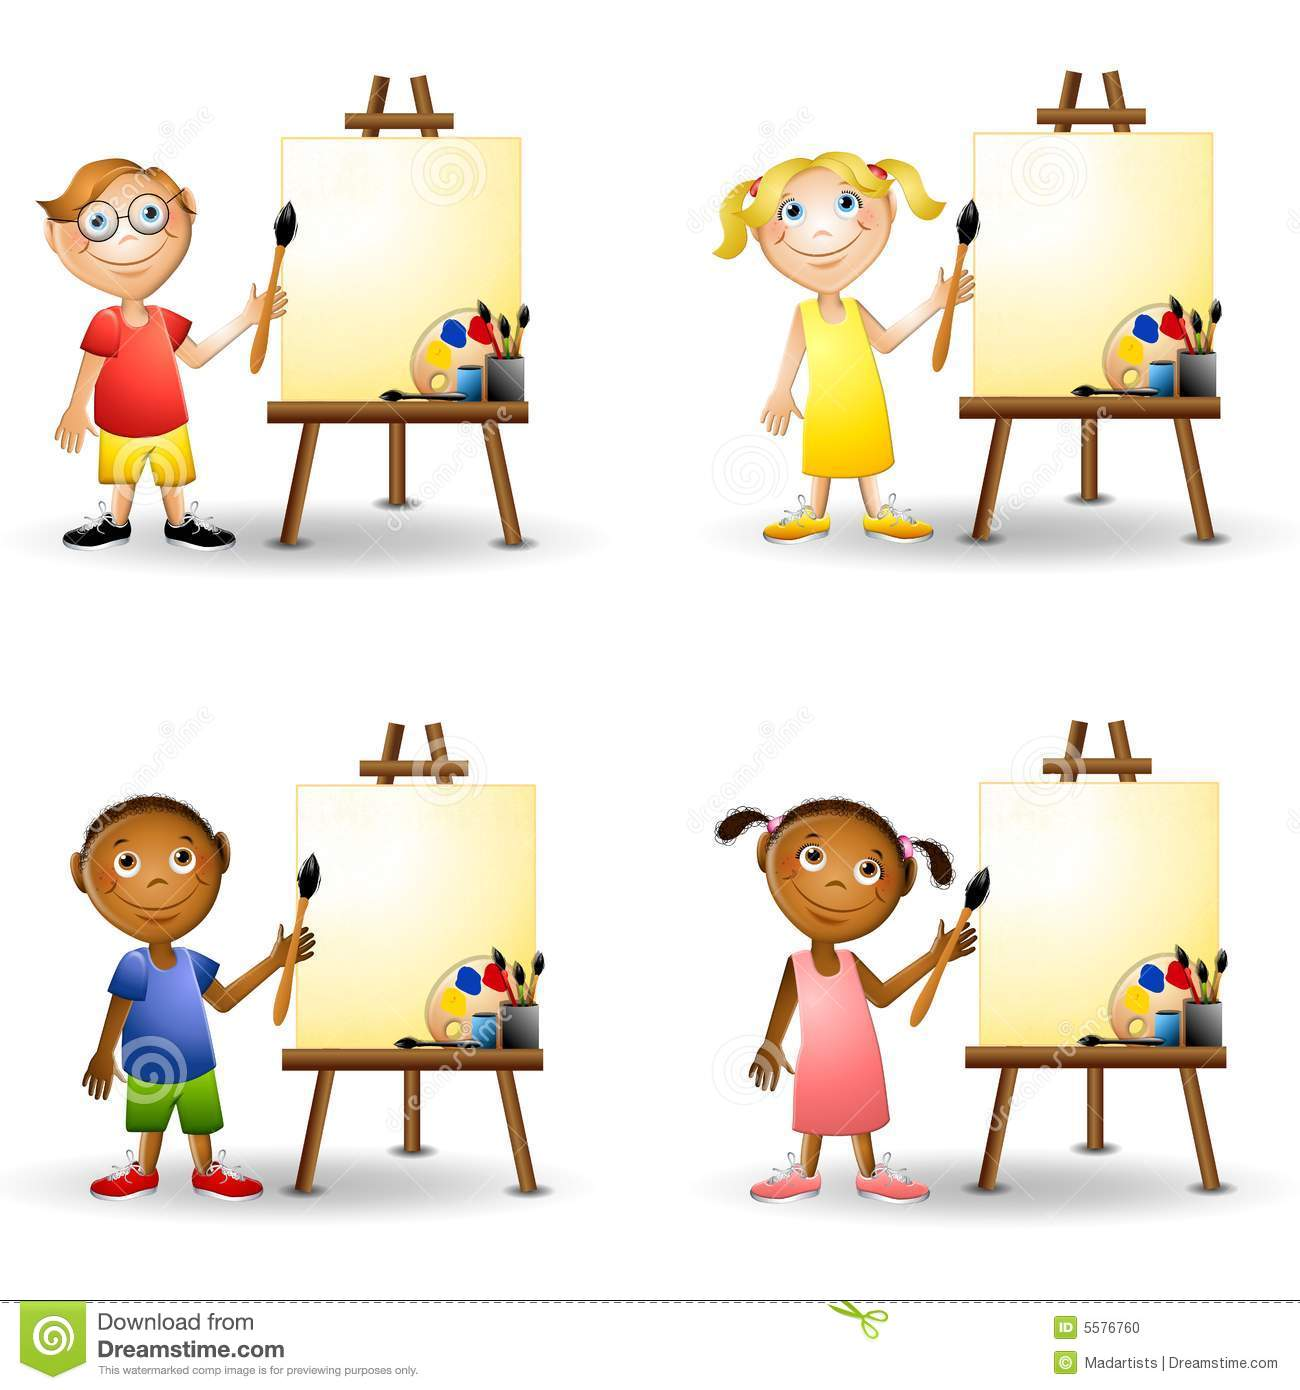 little kids holding paintbrushes and standing beside paint easels